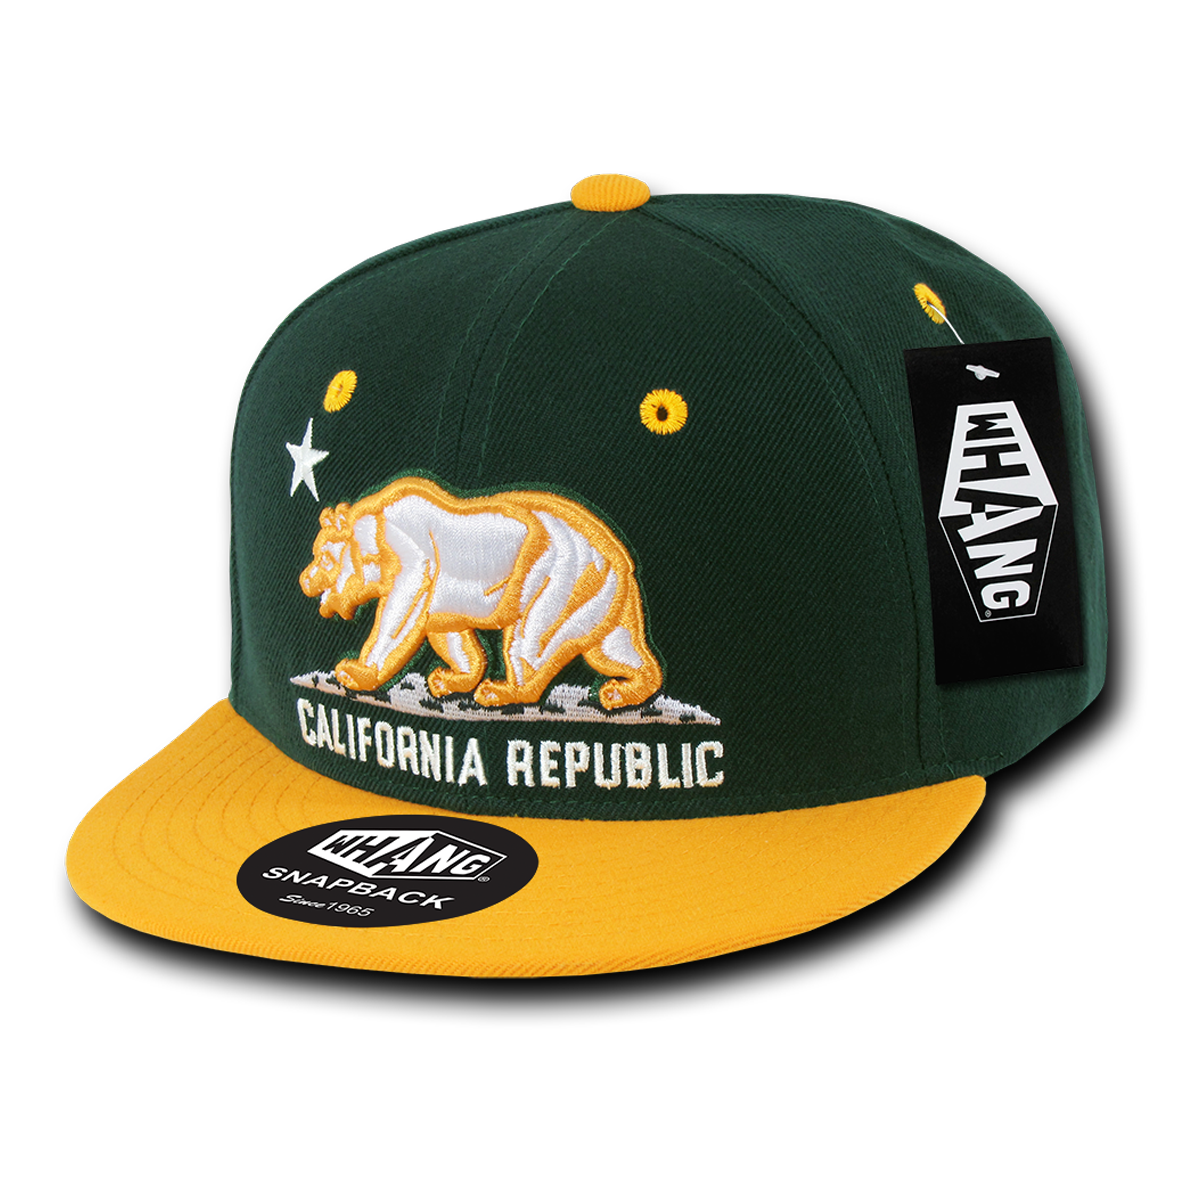 6e3bc018258 California Republic Cali State Bear Flag Oakland Snapback Hat by Whang